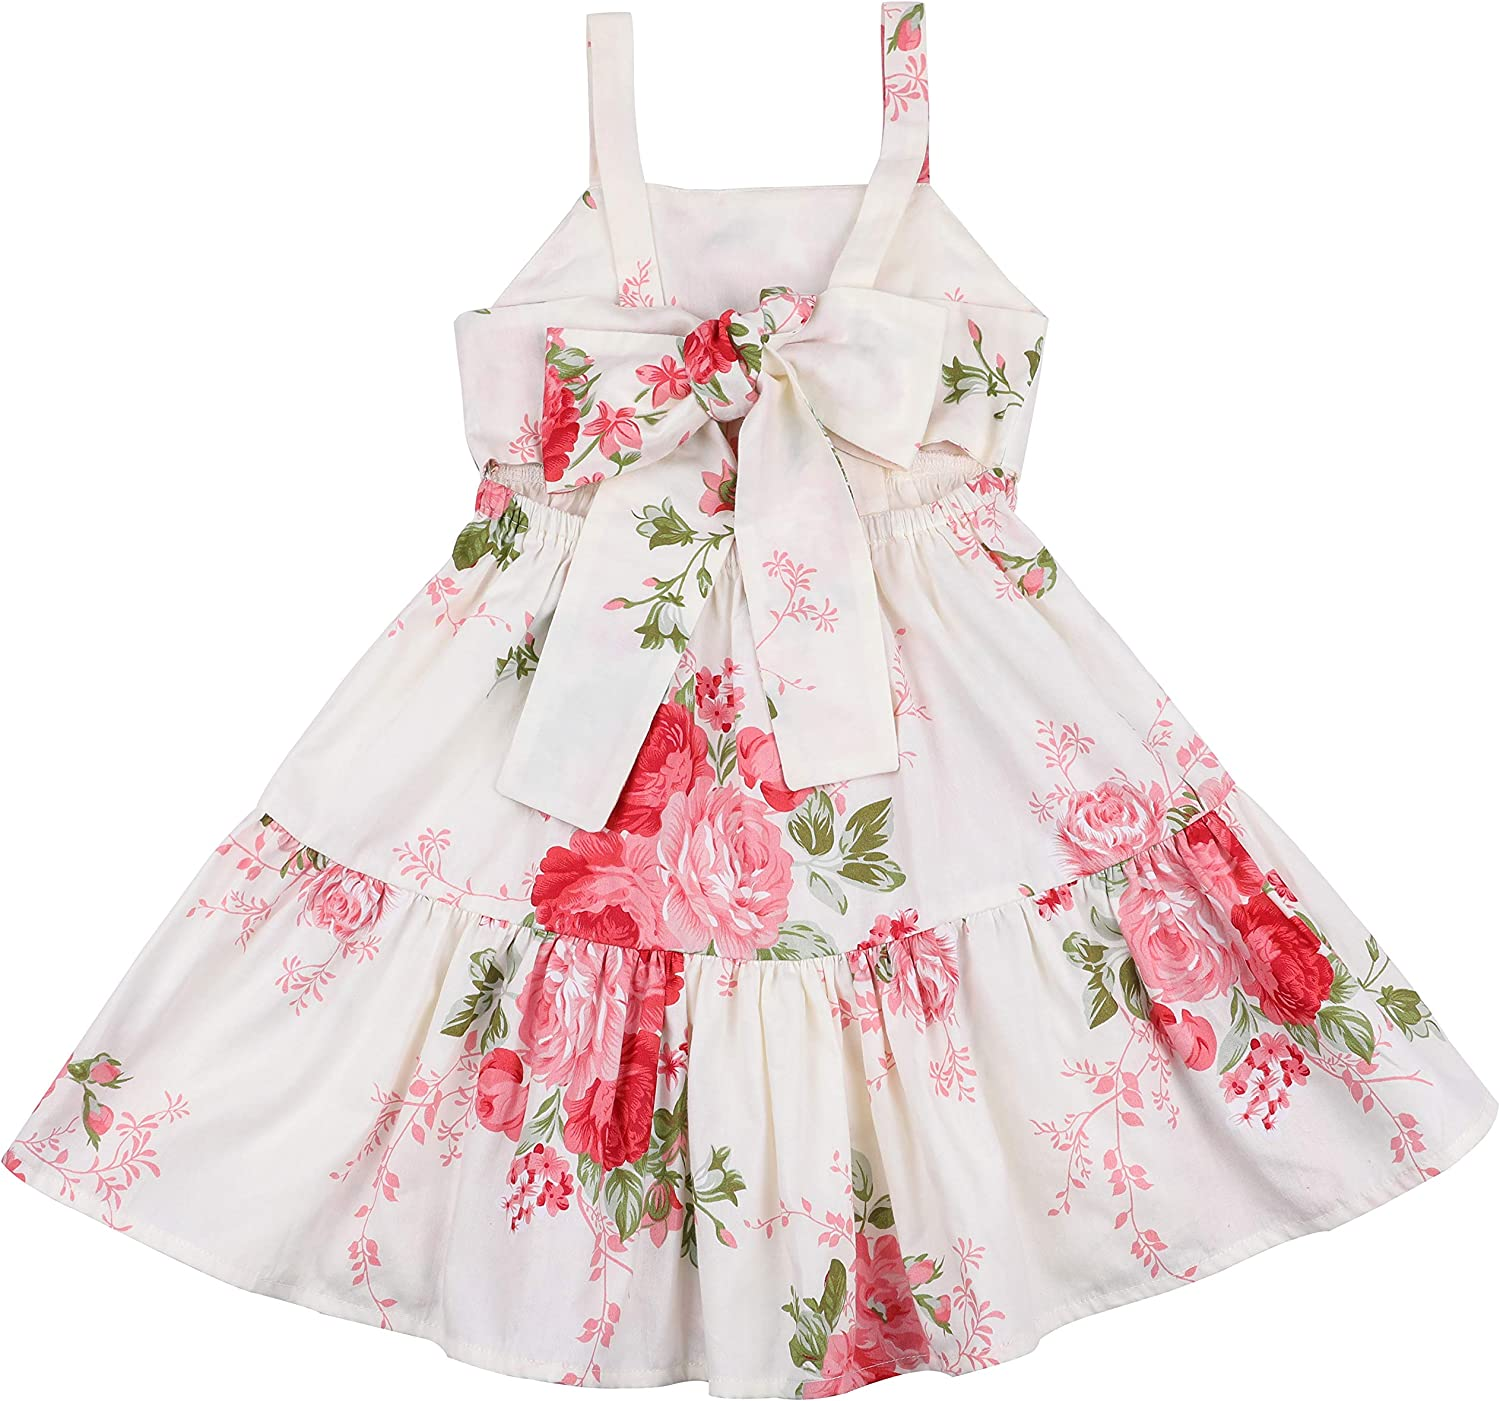 1-4Years,SO-buts Toddler Baby Girls Summer Sleeveless Retro Sleeveless Floral Print Lace Dresses Clothes